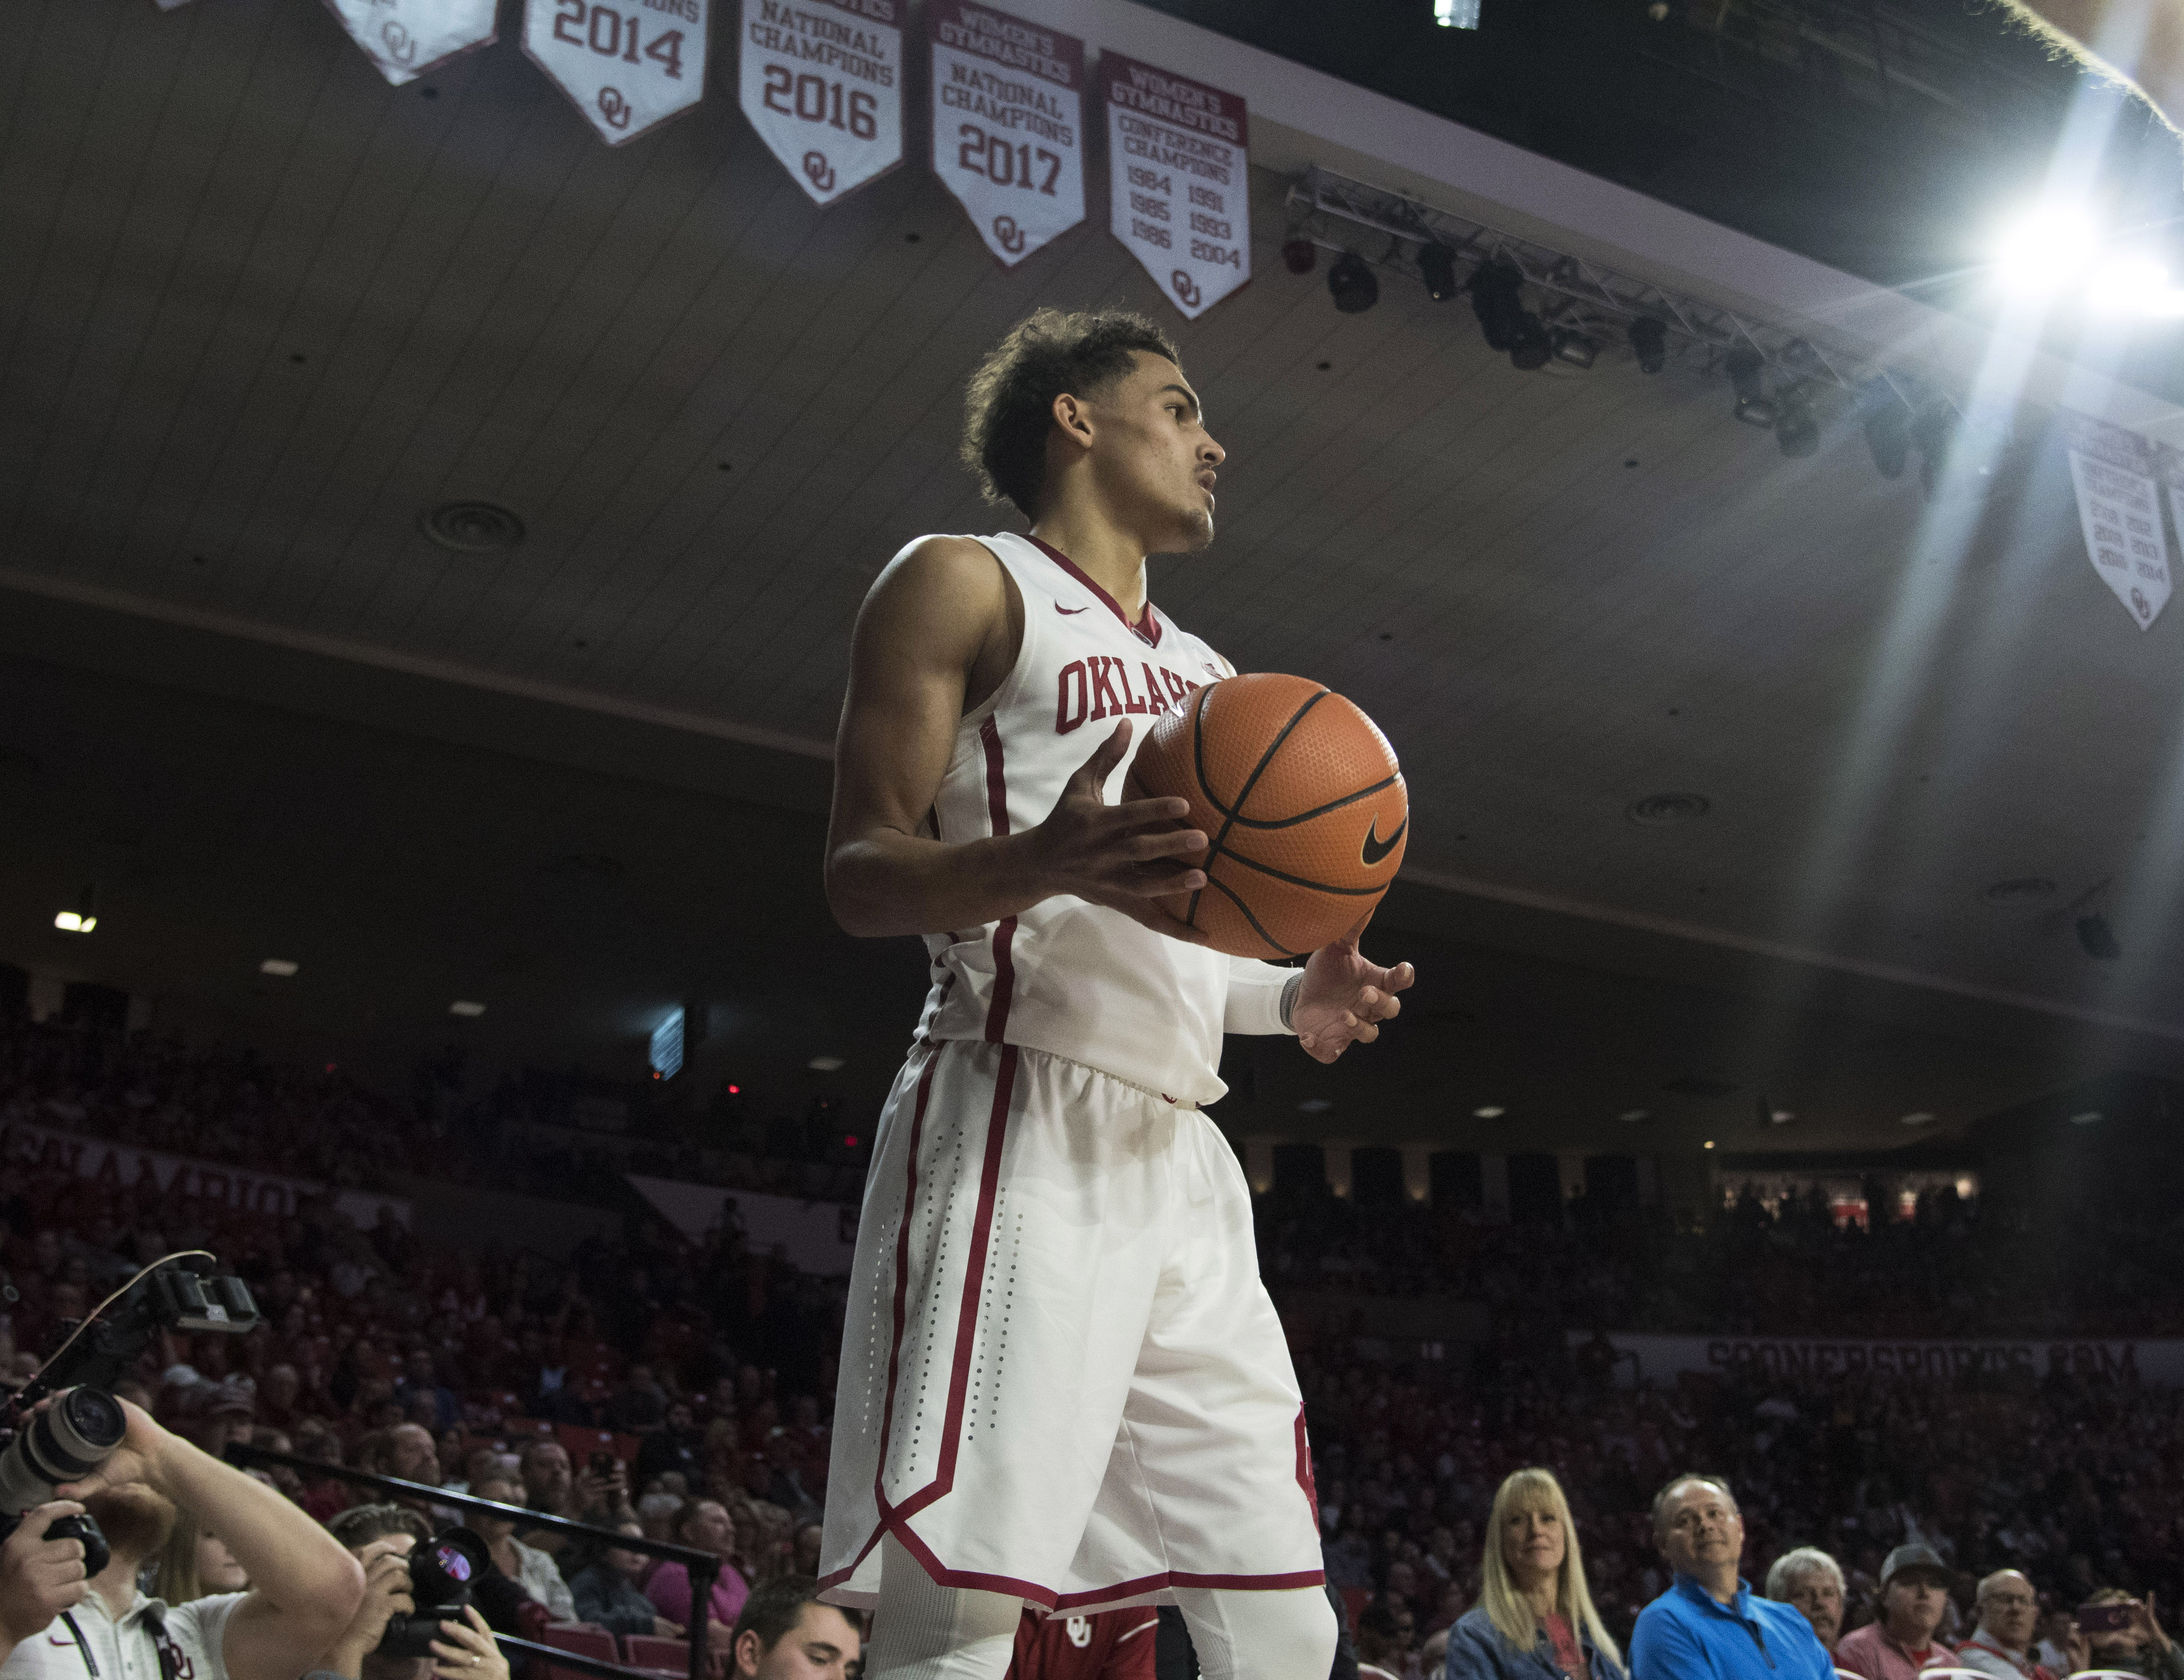 Oklahoma earns a No. 10 seed, will play Rhode Island